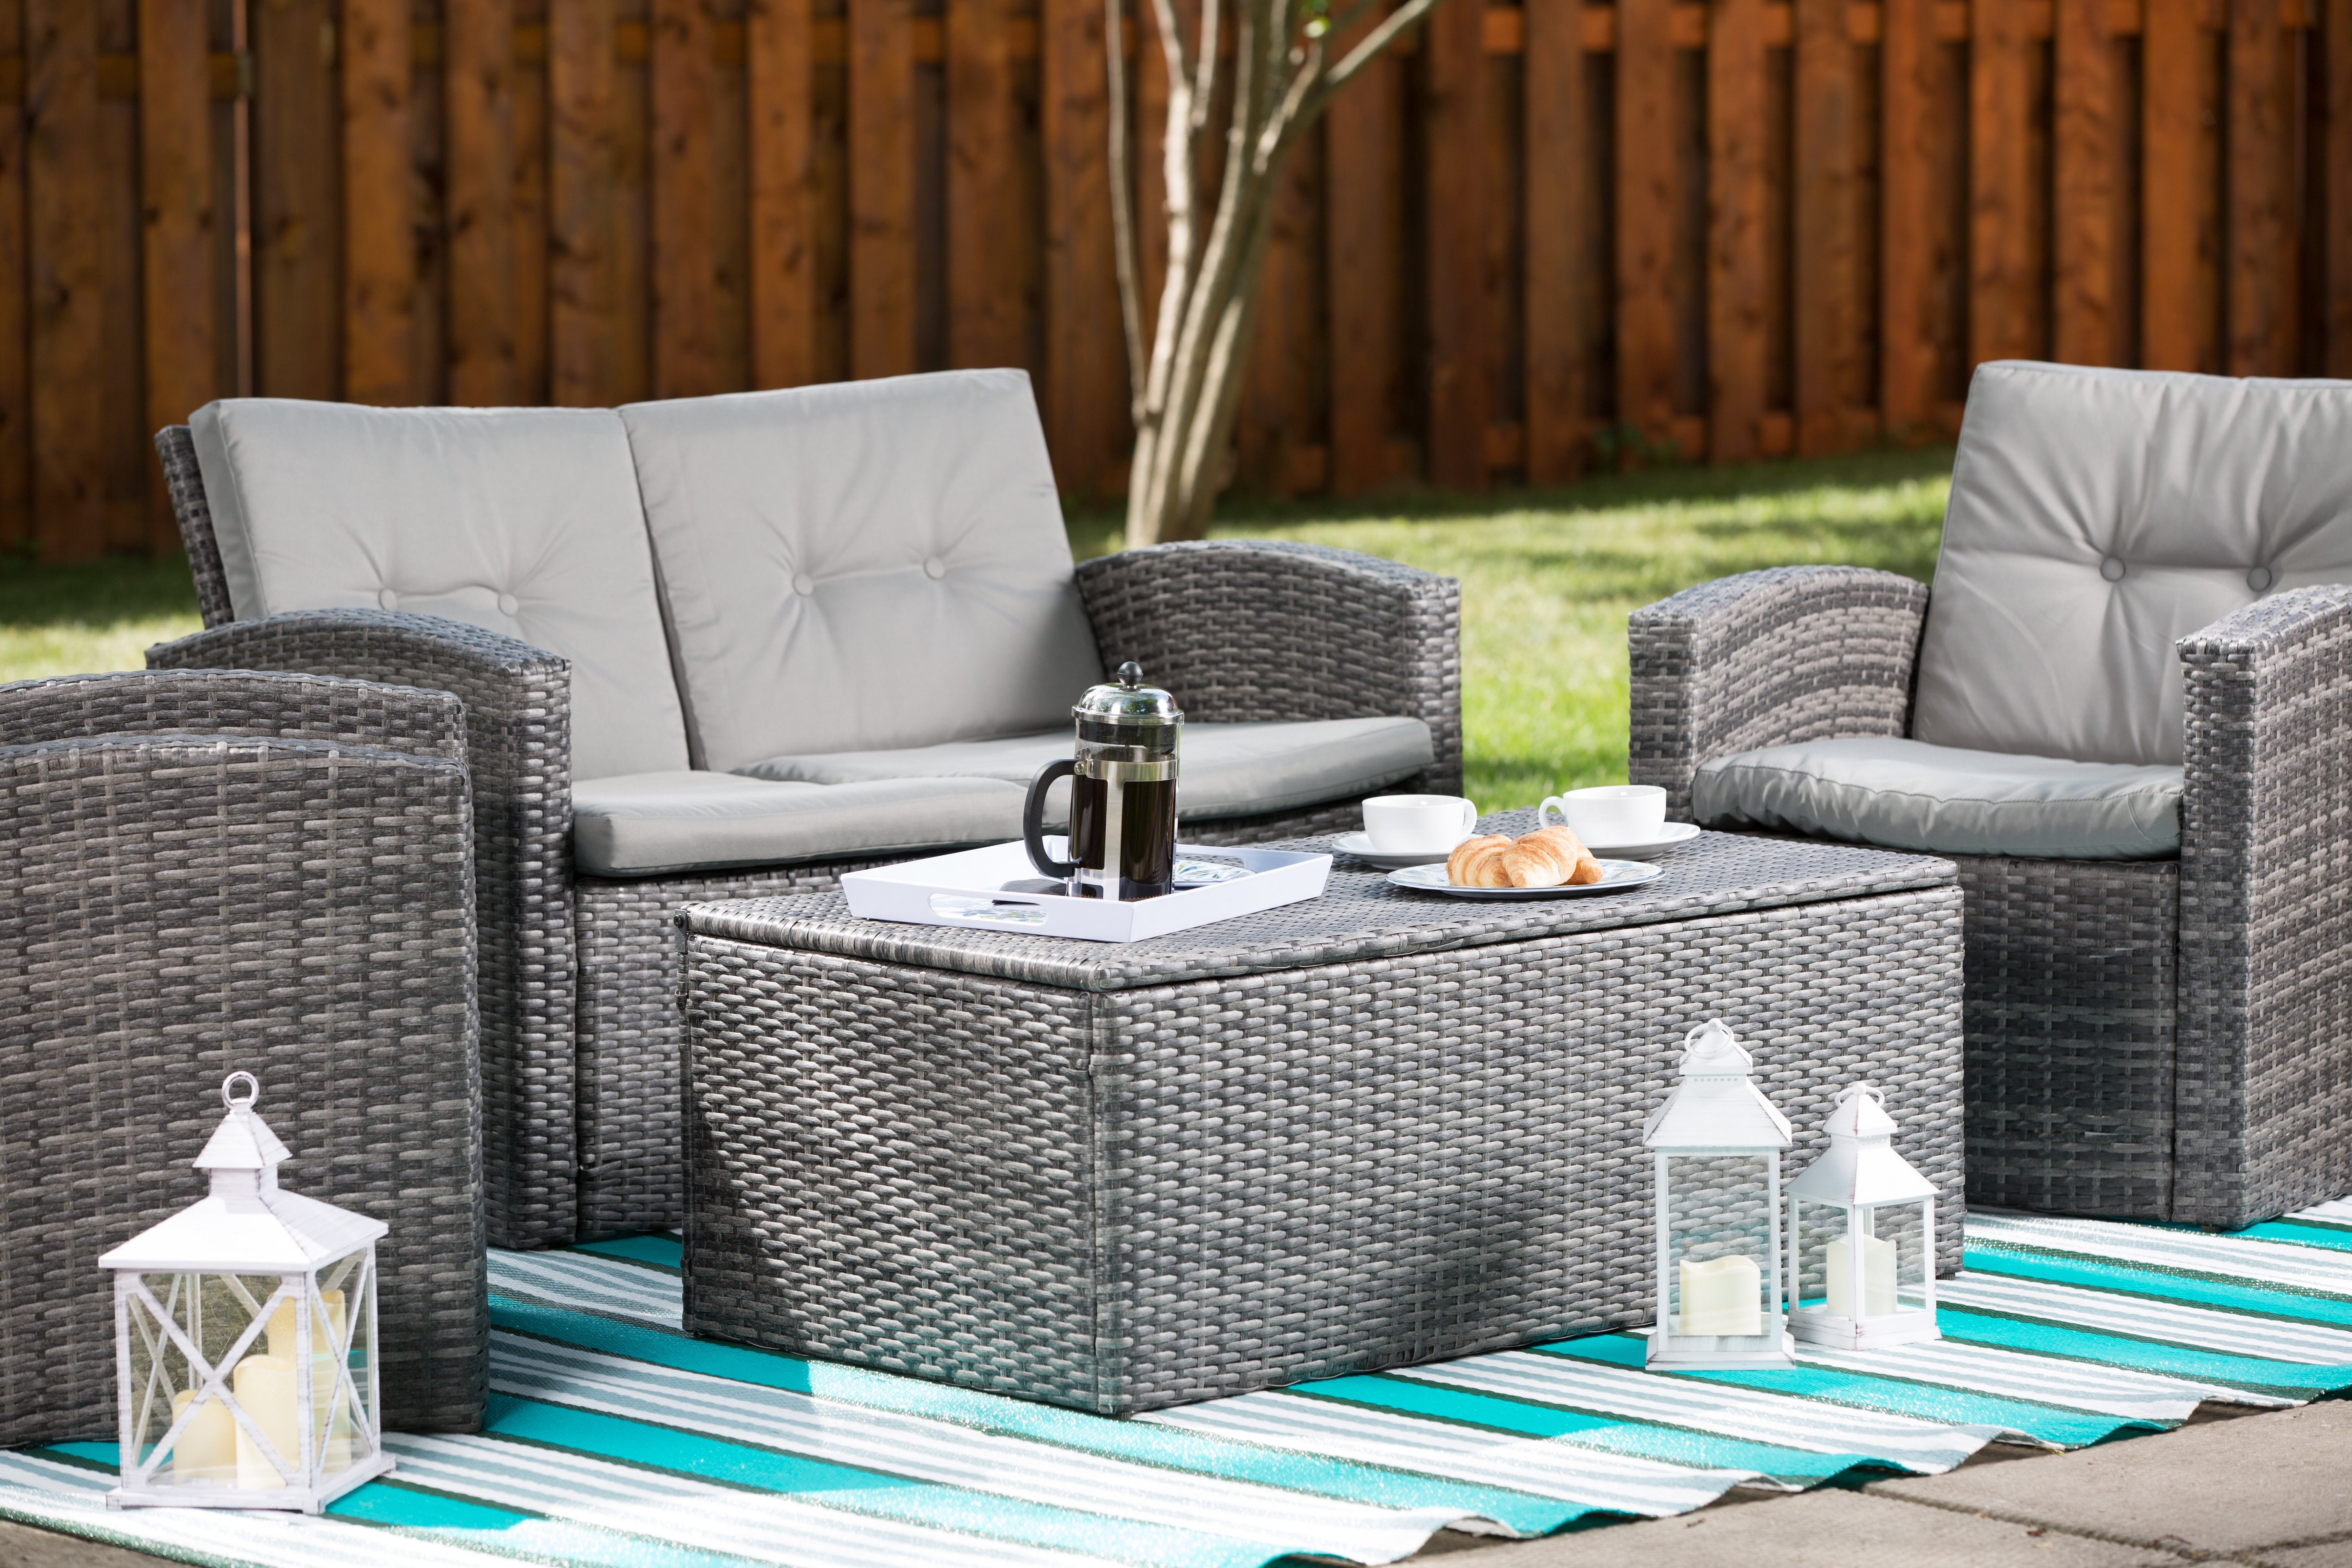 Set of 4 grey outdoor patio set with one love seat, two single seaters, coffee table, lanterns and blue outdoor mat